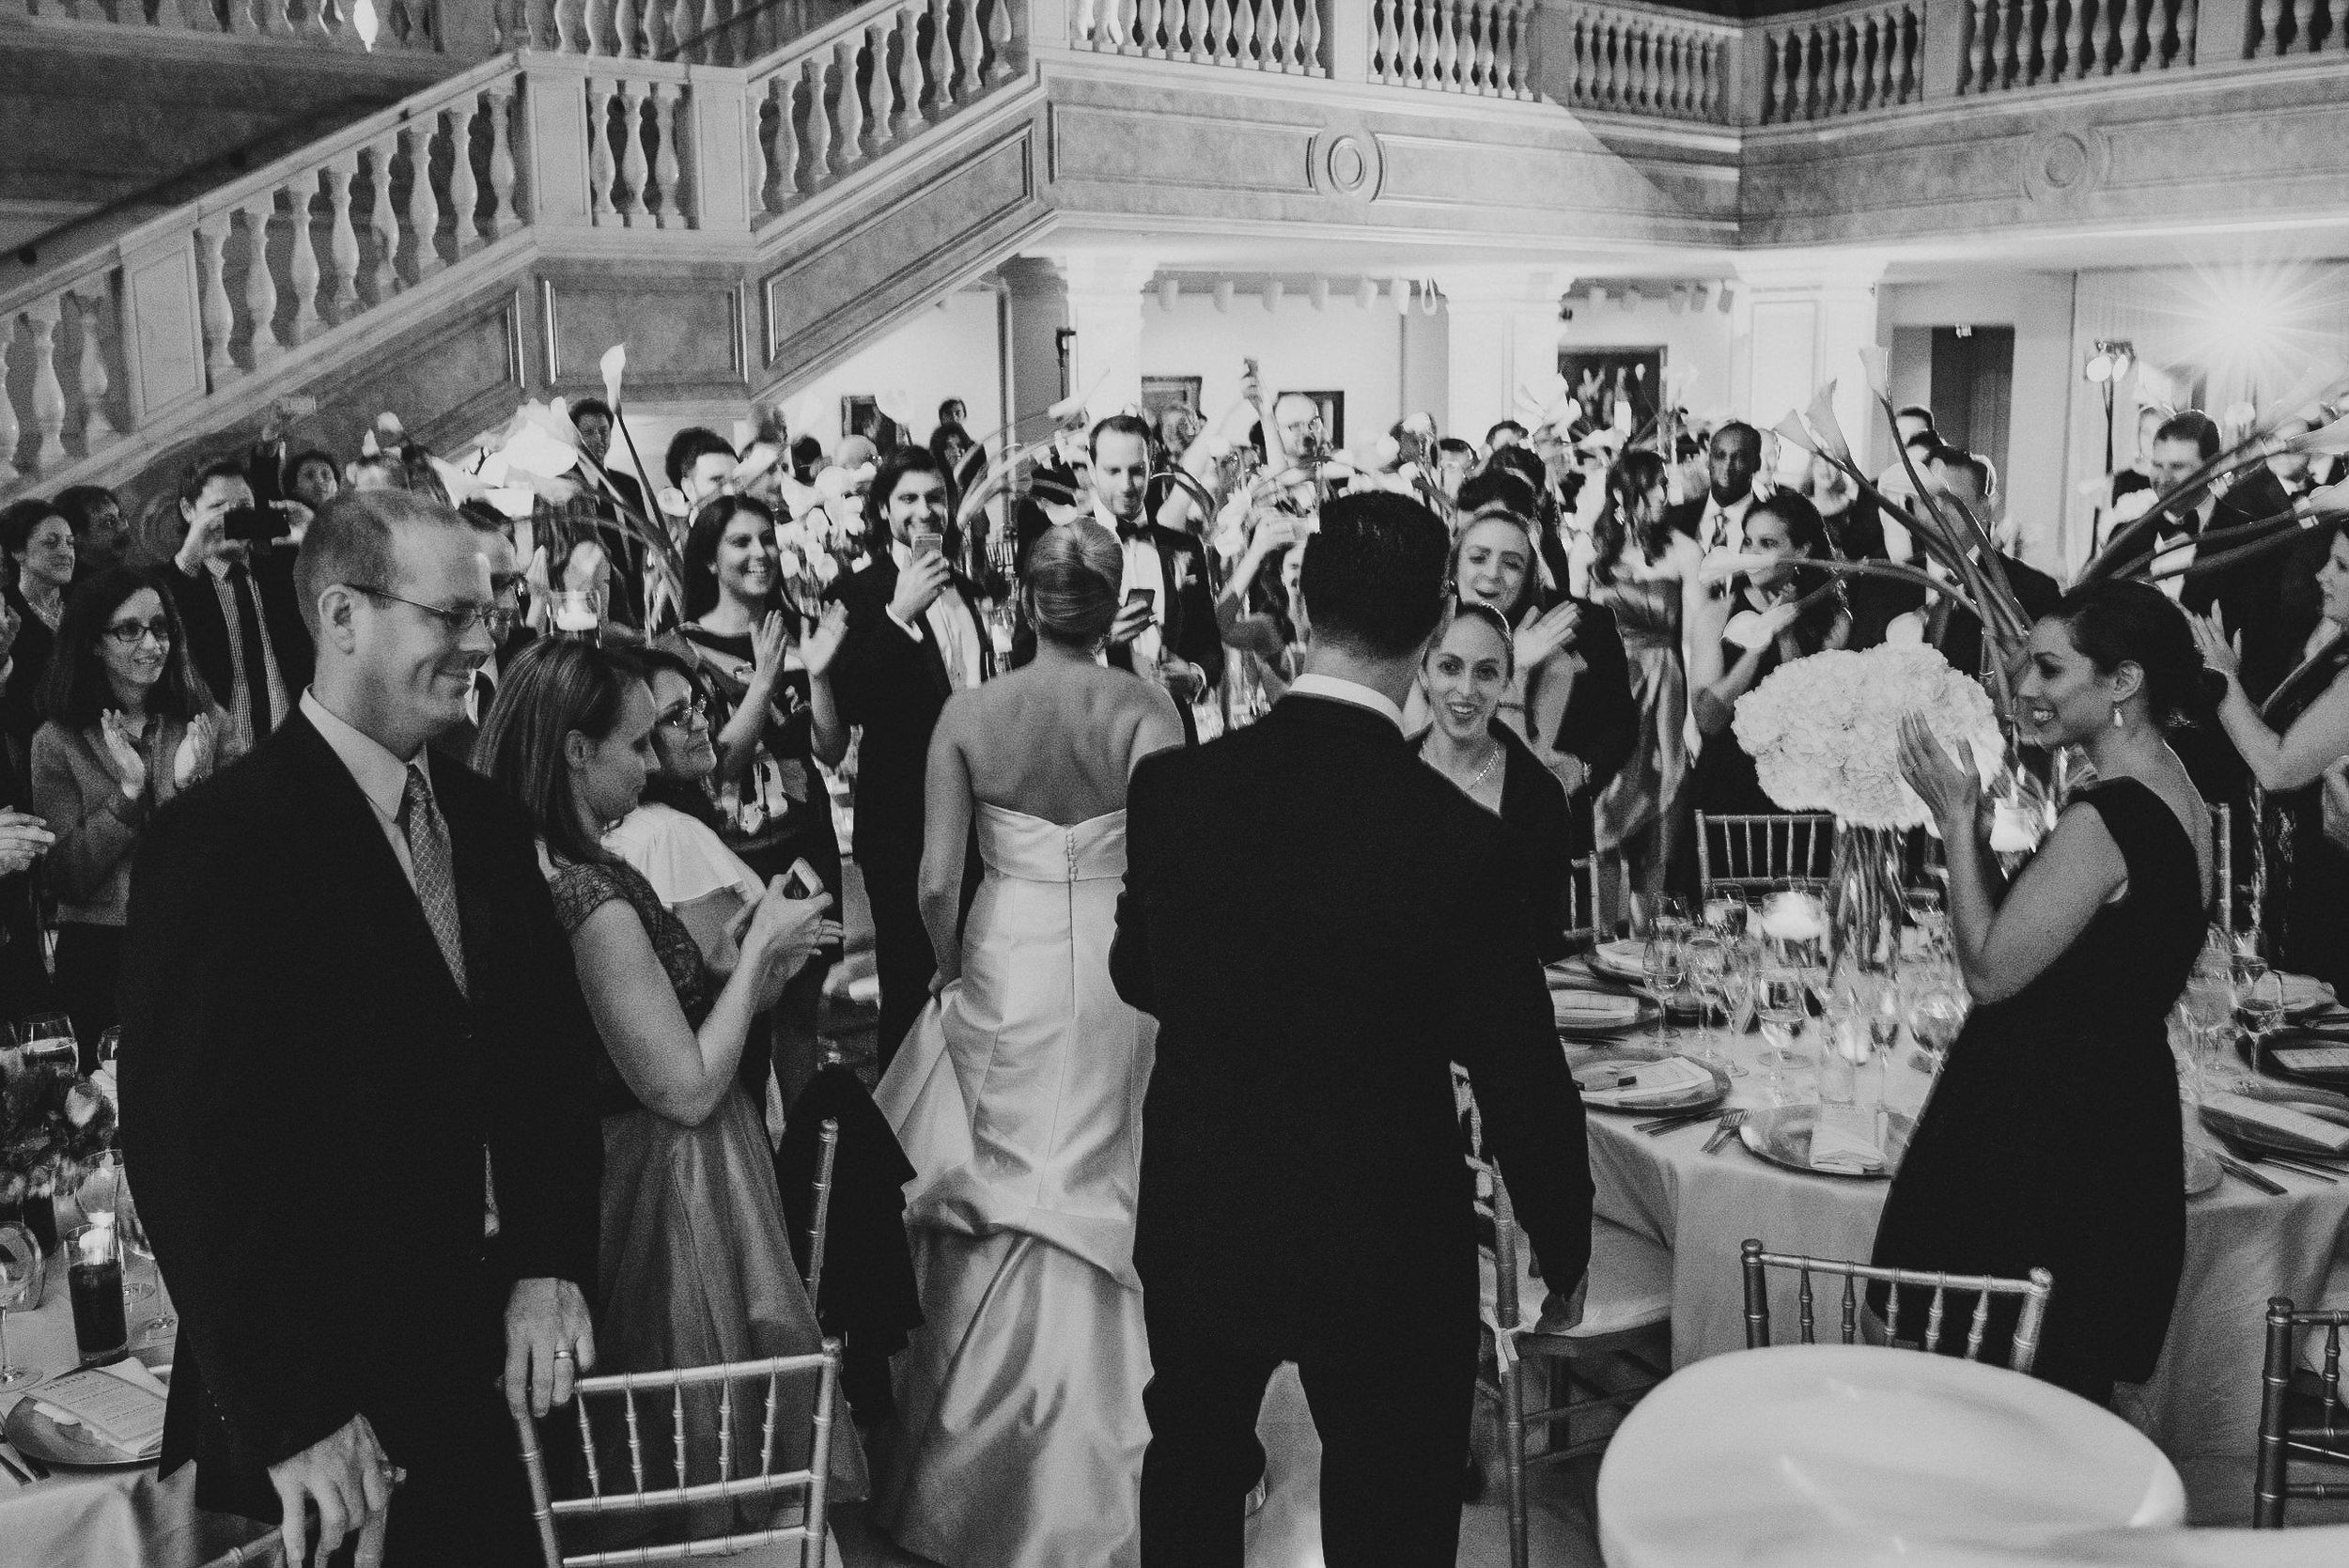 Wedding at National Museum of Women in the Arts by Photographer Mantas Kubilinskas-24.jpg